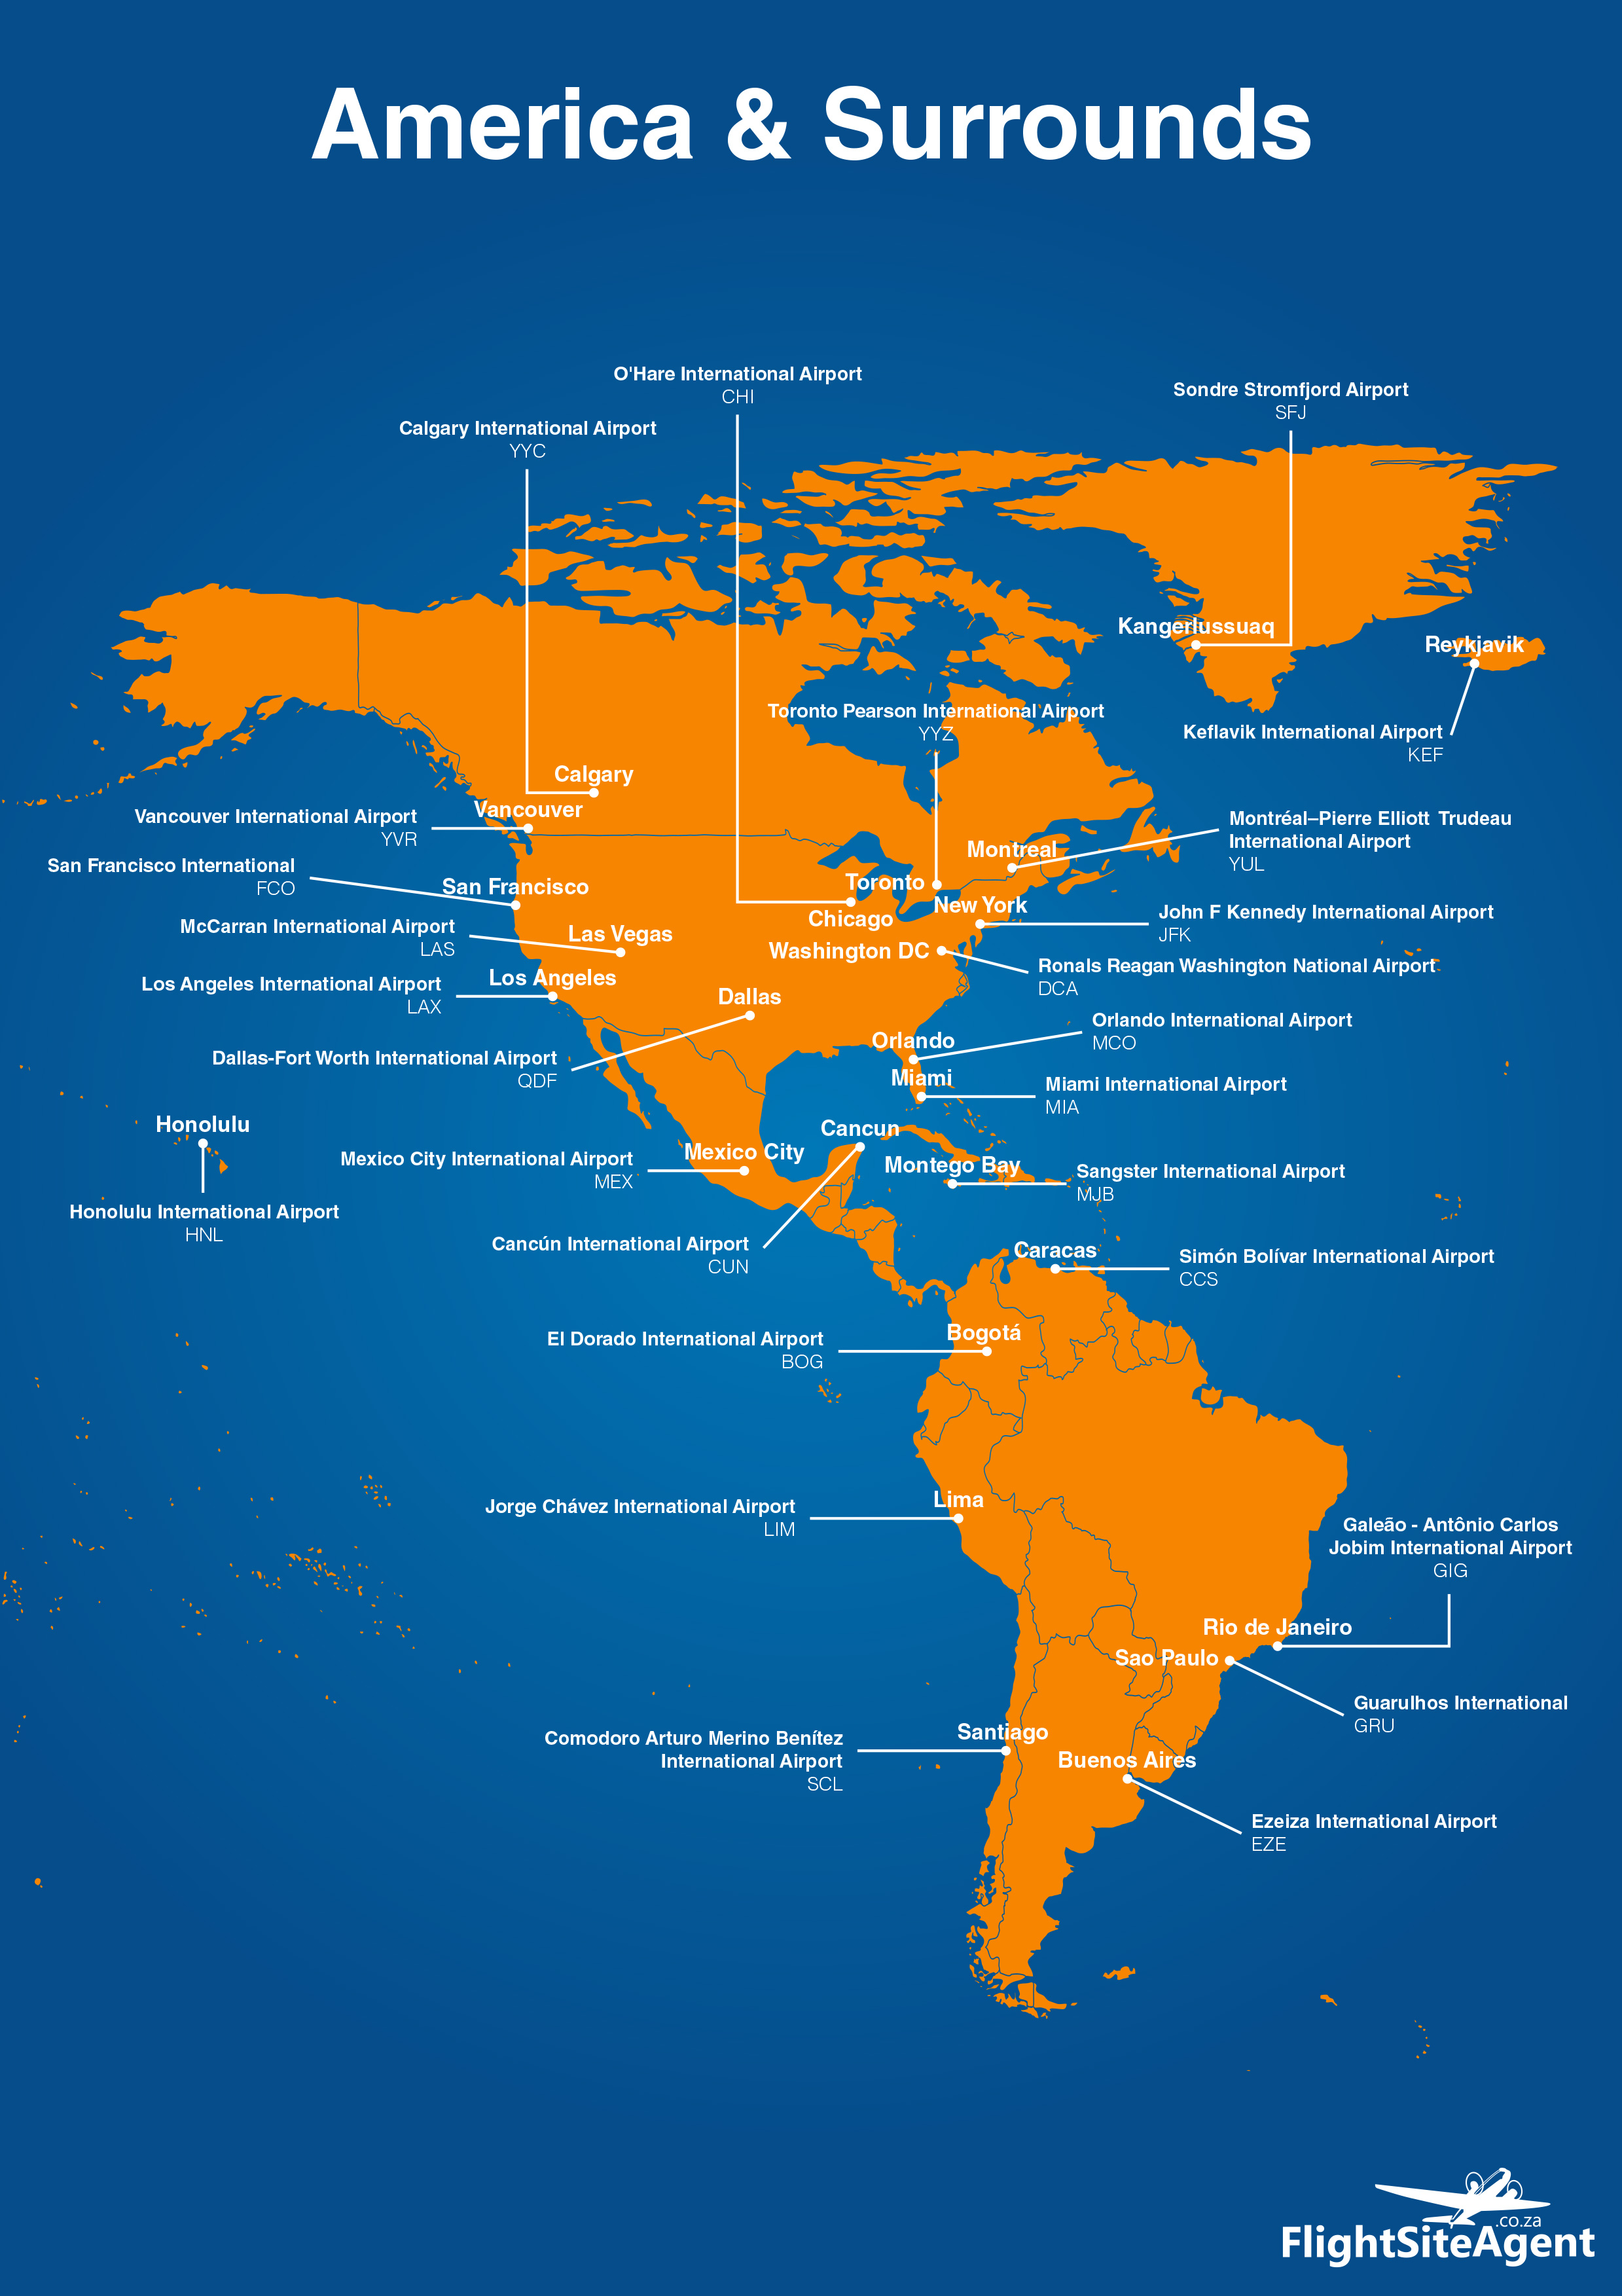 A snapshot of all major airports around the world flightsiteagent america gumiabroncs Choice Image